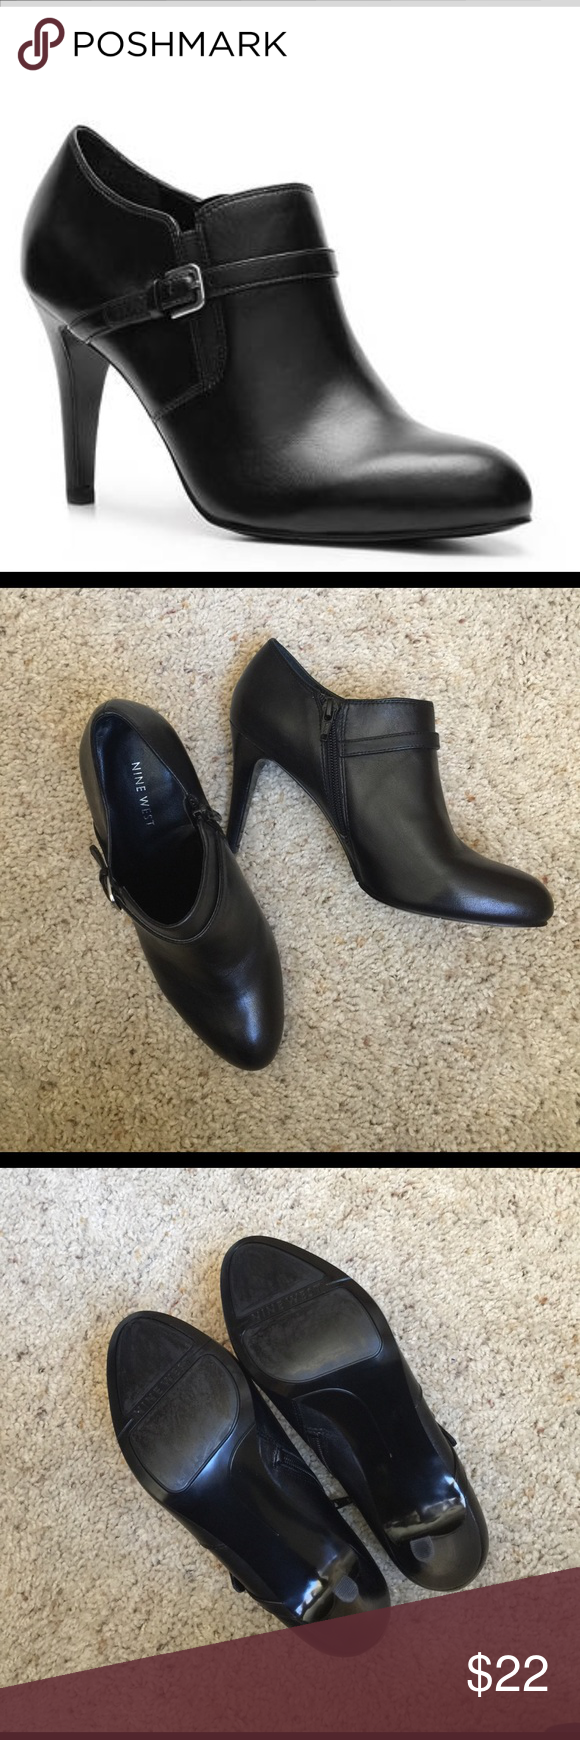 """NINE WEST METRA BOOTIE You'll look fierce in the Metra bootie by Nine West. Its sleek and sassy style will dress up your look in no time*Leather upper*Strap and buckle detail*Inside zipper closure*Almond toe* 3½"""" covered heel, size 7 Nine West Shoes Ankle Boots & Booties"""